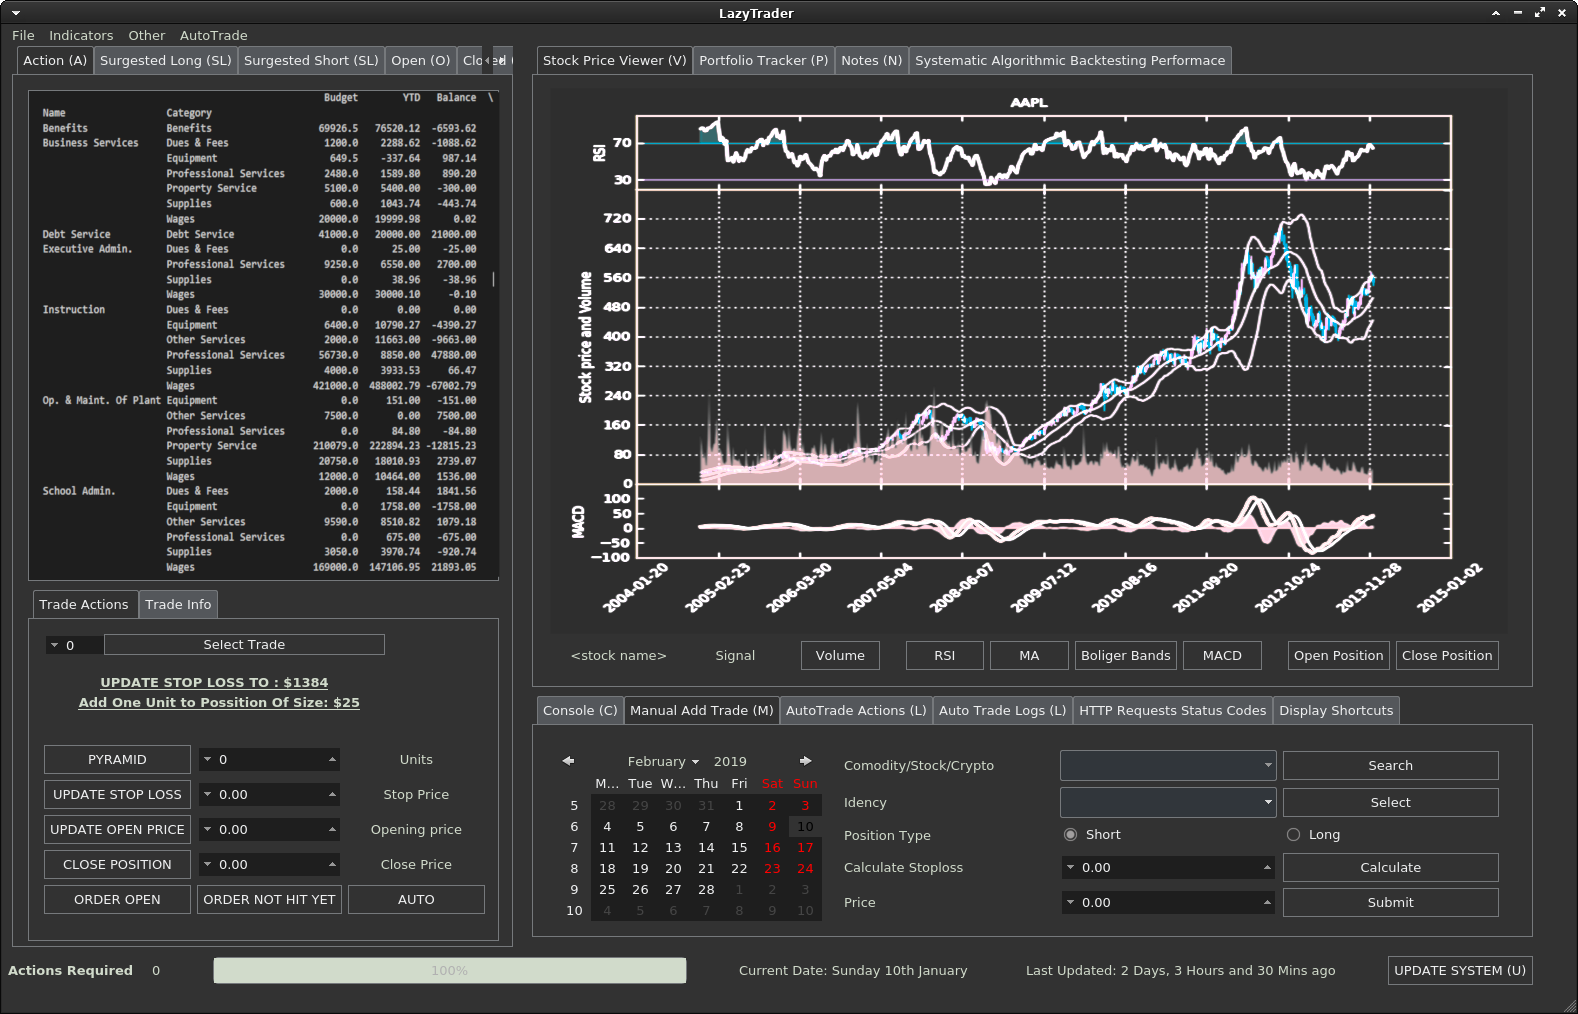 Trade with a high-performance trading platform